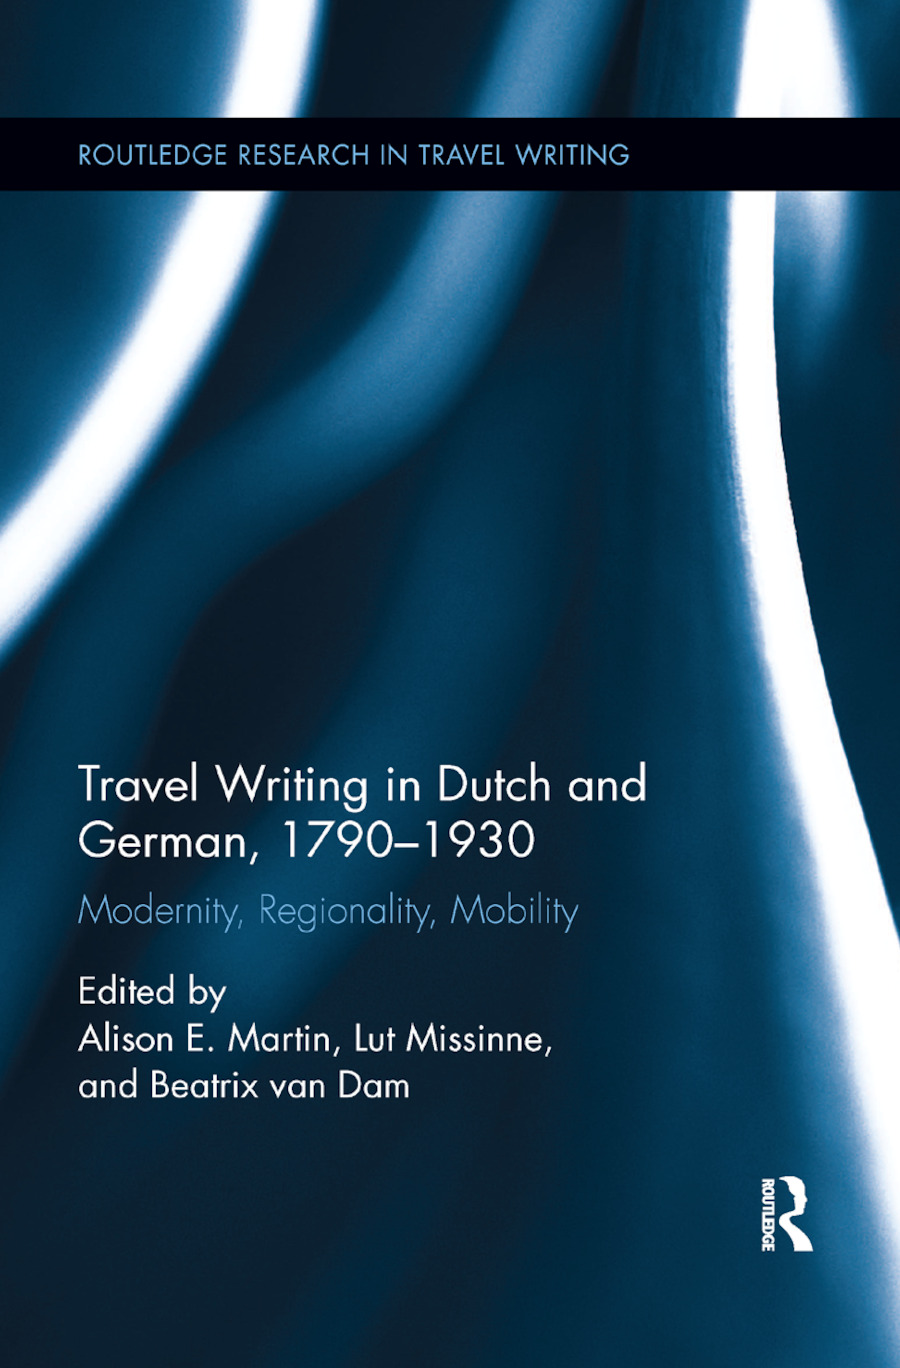 Travel Writing in Dutch and German, 1790-1930: Modernity, Regionality, Mobility, 1st Edition (Paperback) book cover